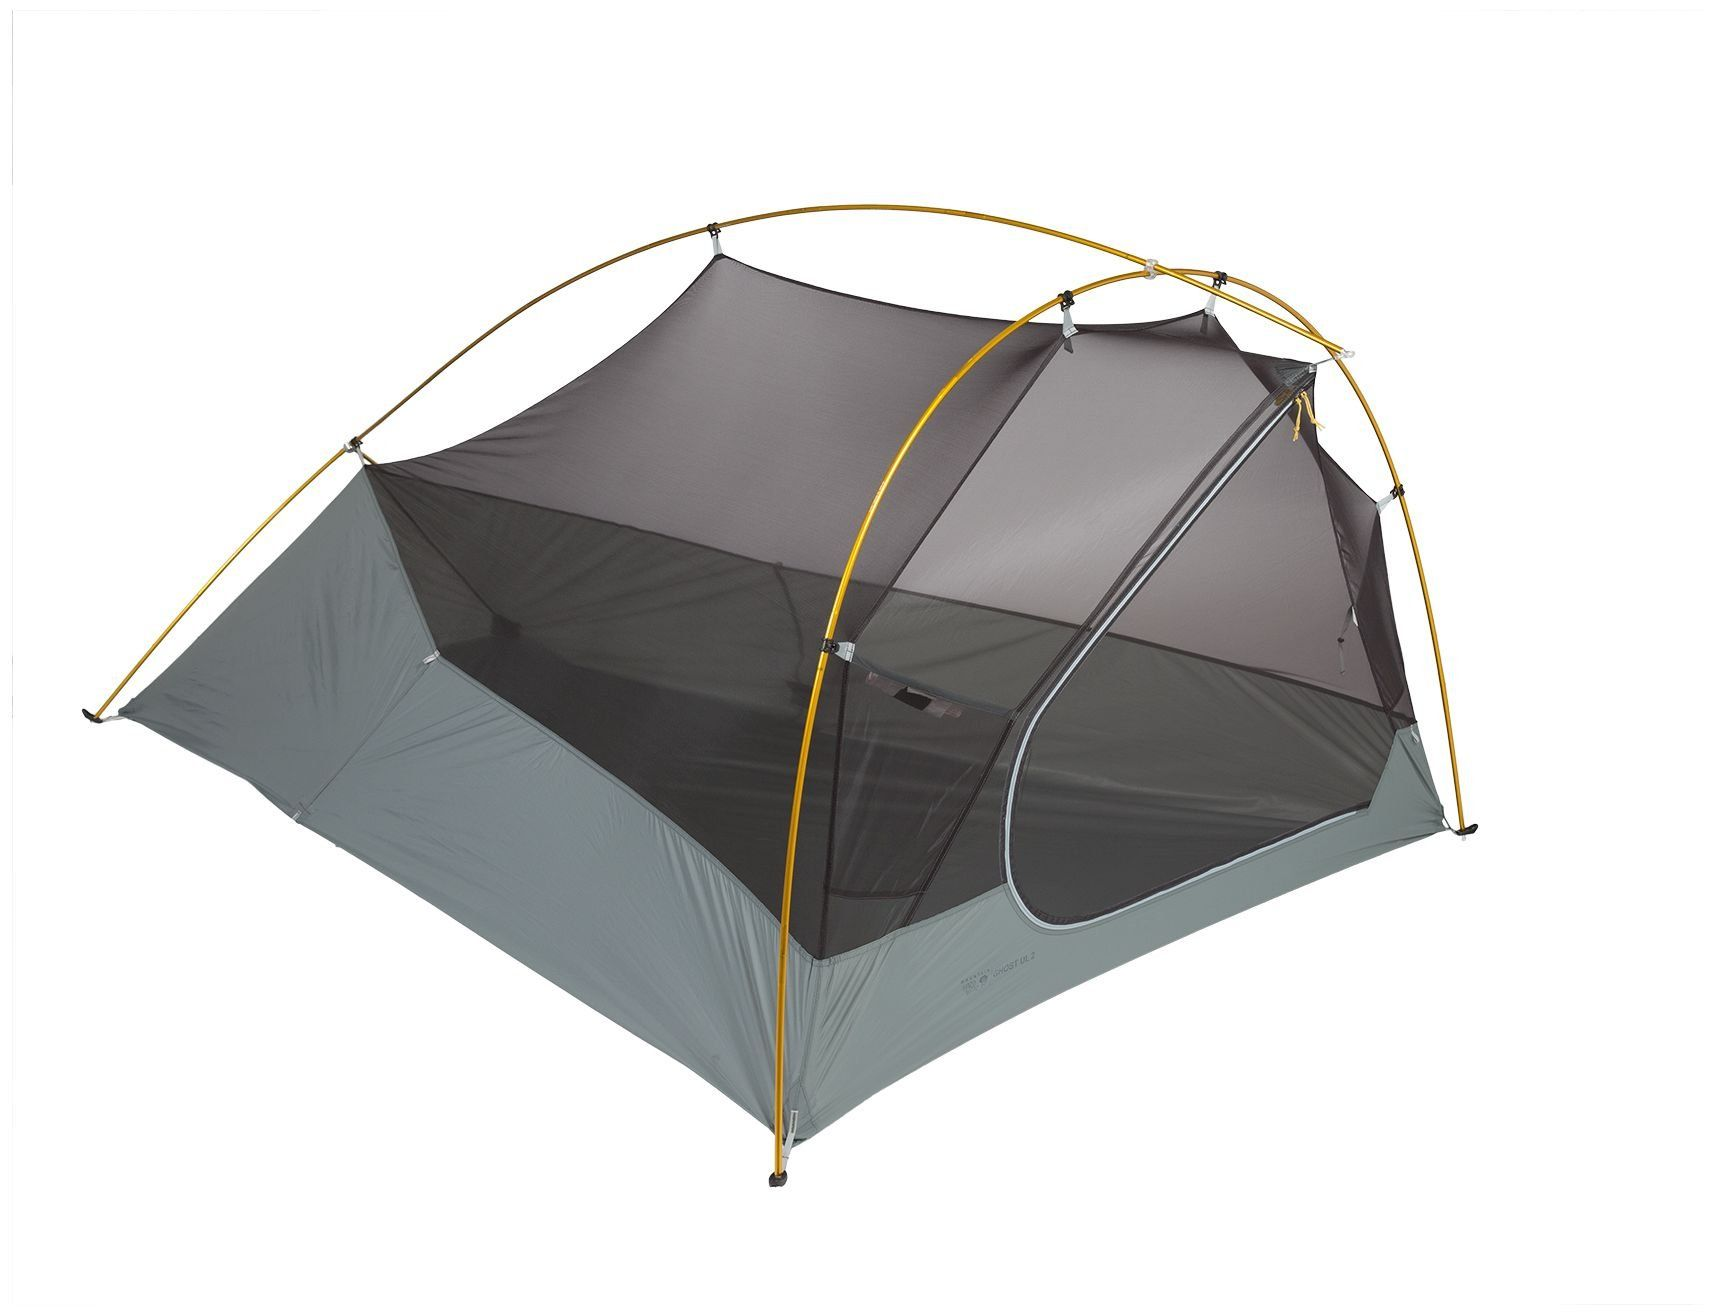 Mountain Hardwear Ghost UL 2 Tent - Grey Ice. Industry leading DAC Featherlight NSL poles  sc 1 st  Pinterest & Mountain Hardwear Ghost UL 2 Tent - Grey Ice. Industry leading DAC ...